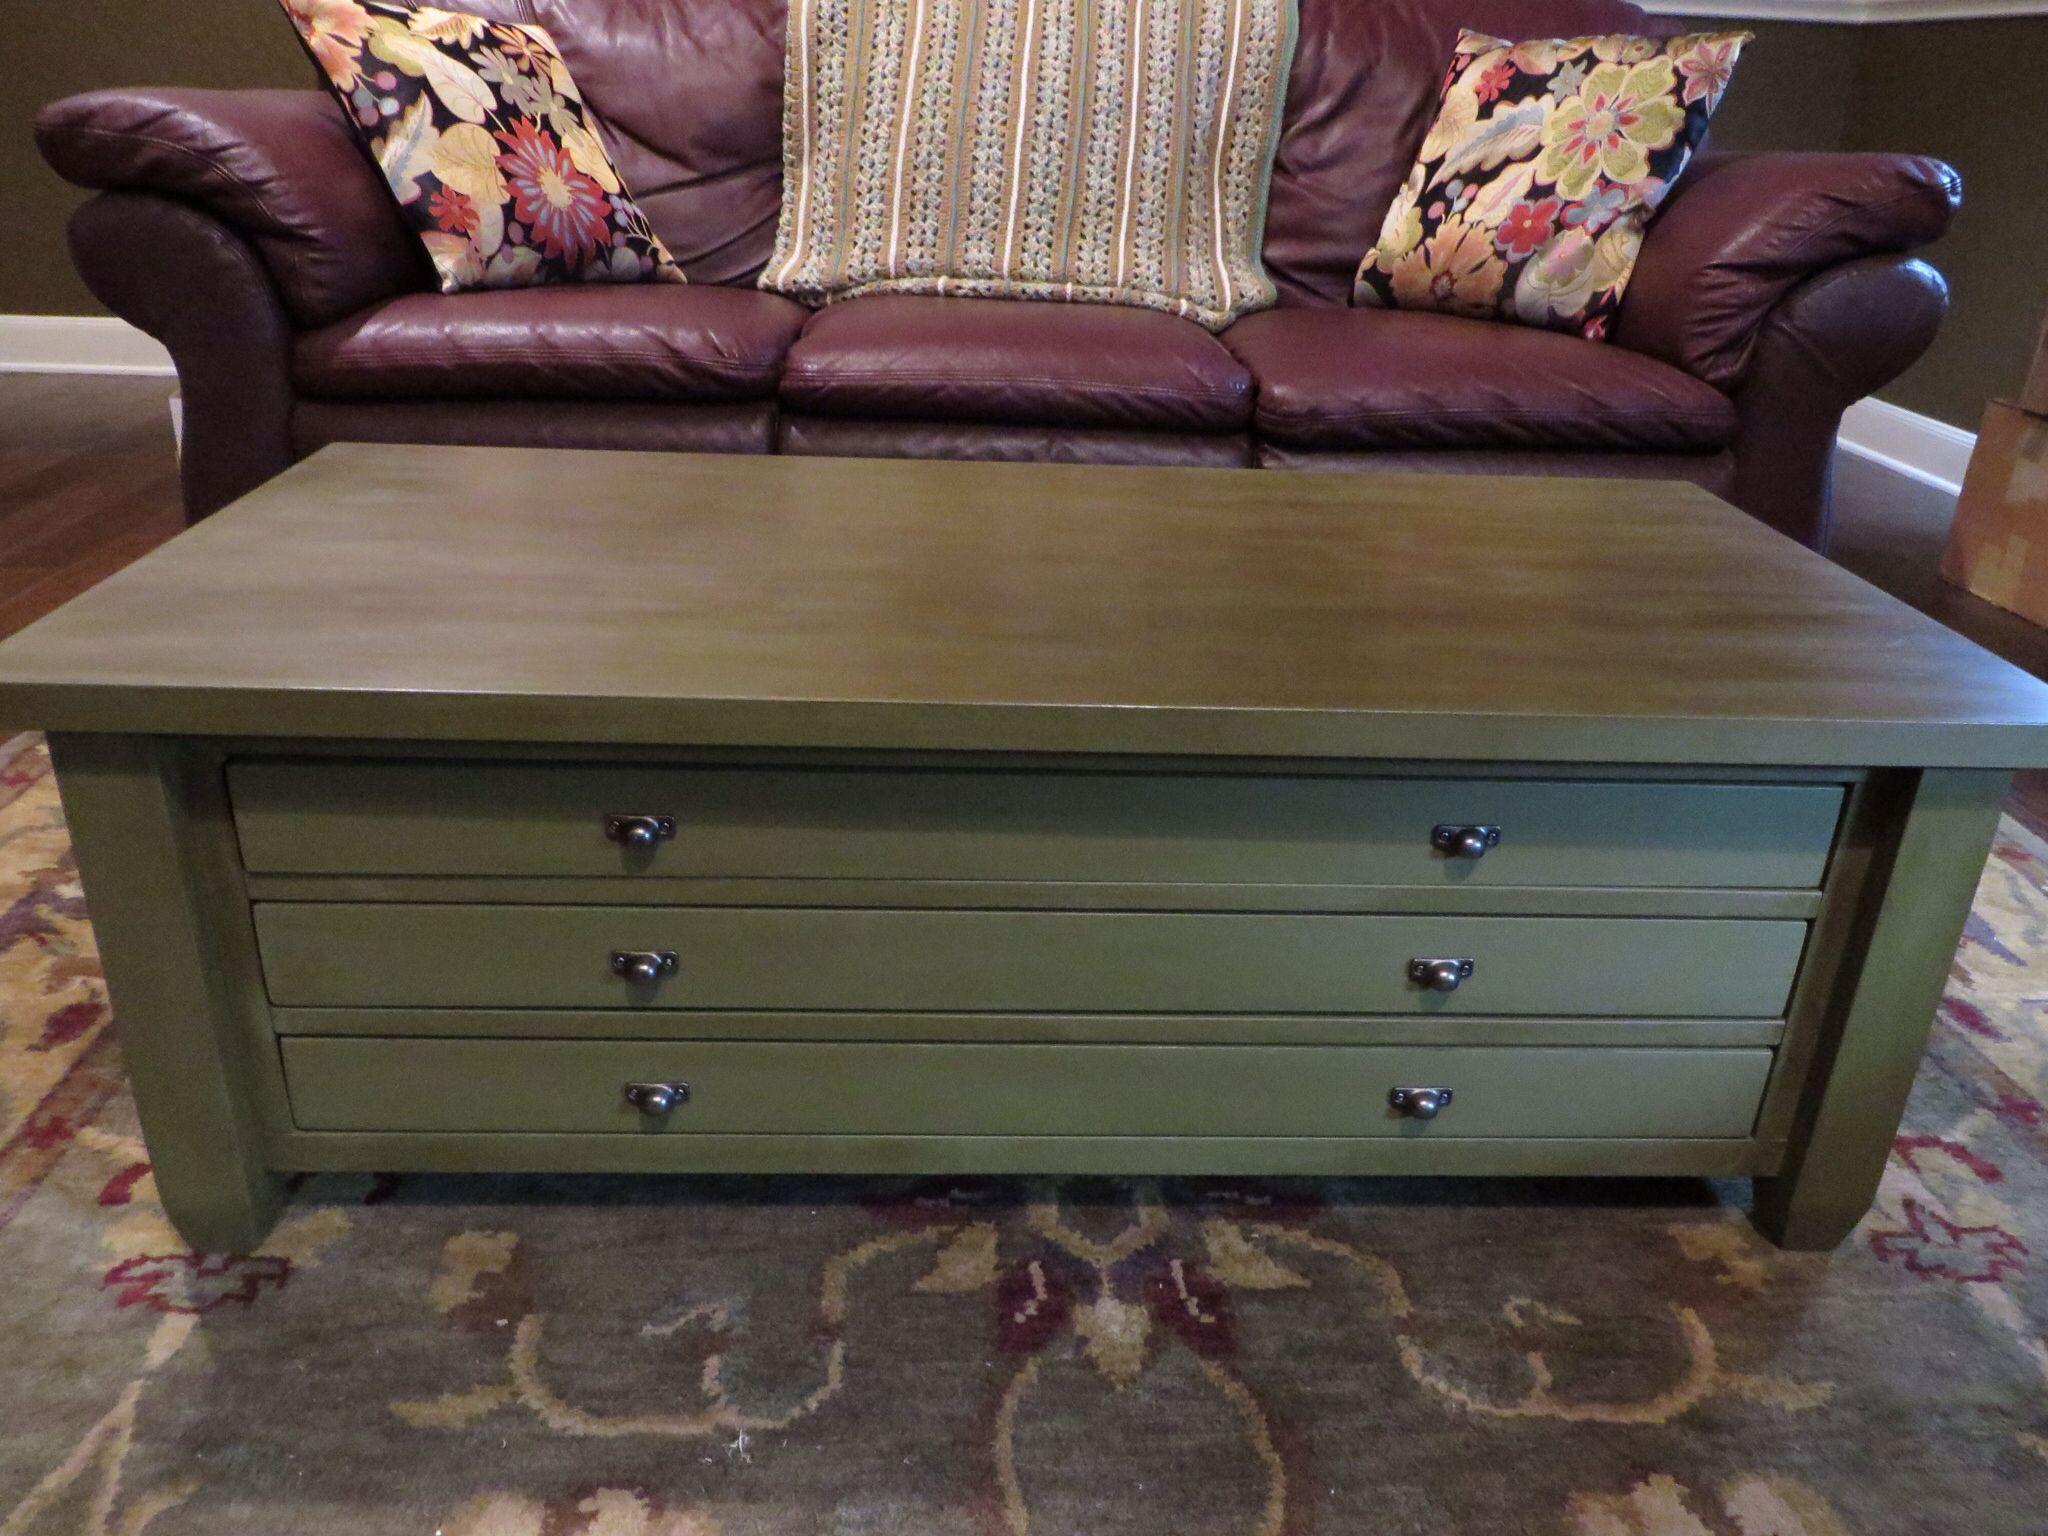 Green Coffee Tables 17 Best Images About Painting Furniture On Pinterest Furniture